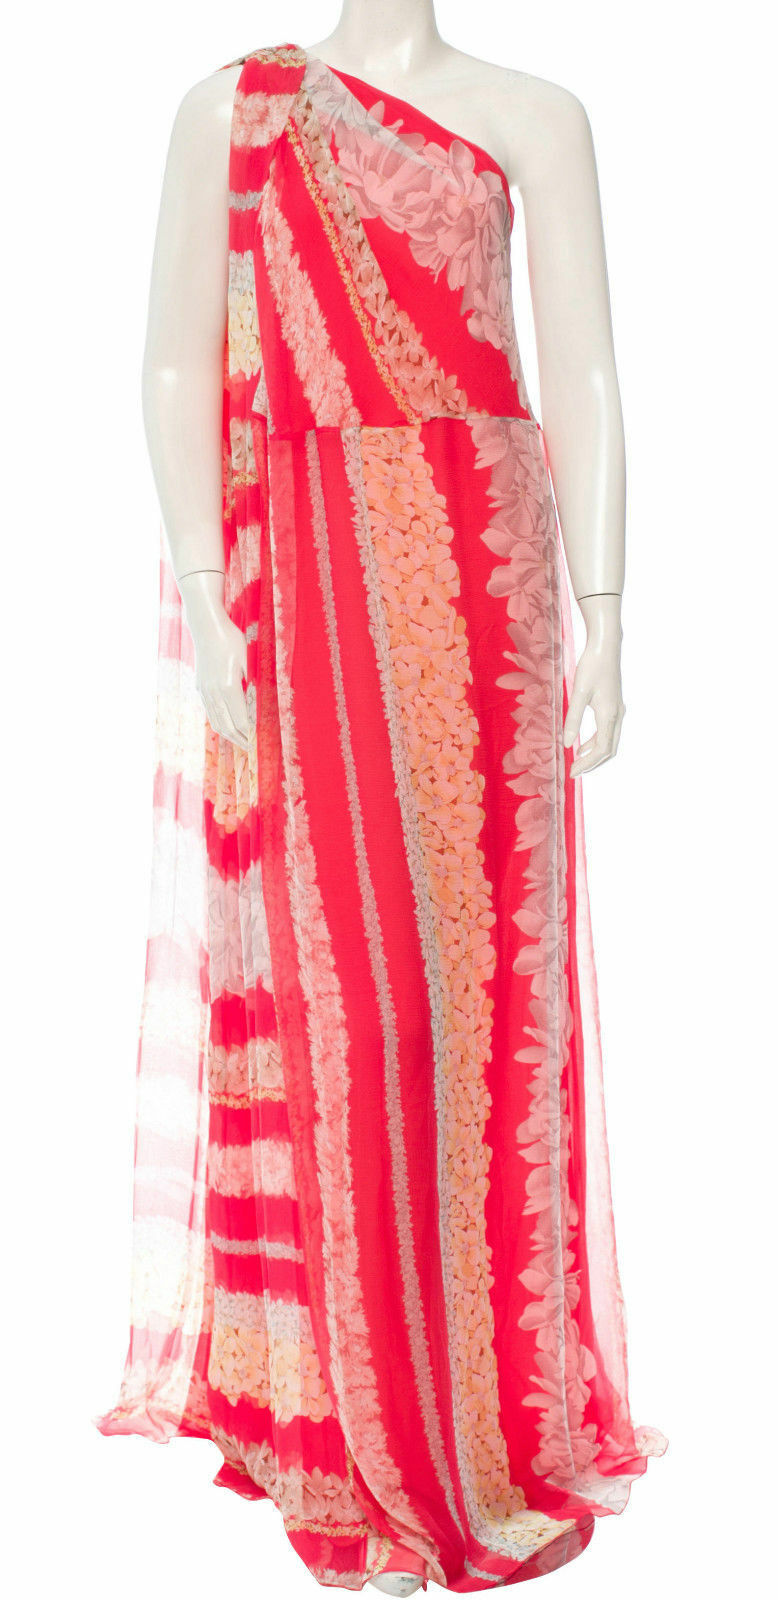 3573f39177ba6 MISSONI Floral Grecian Maxi Dress SZ 42 = = = US 6 NWOT RT 3.8K b313d0